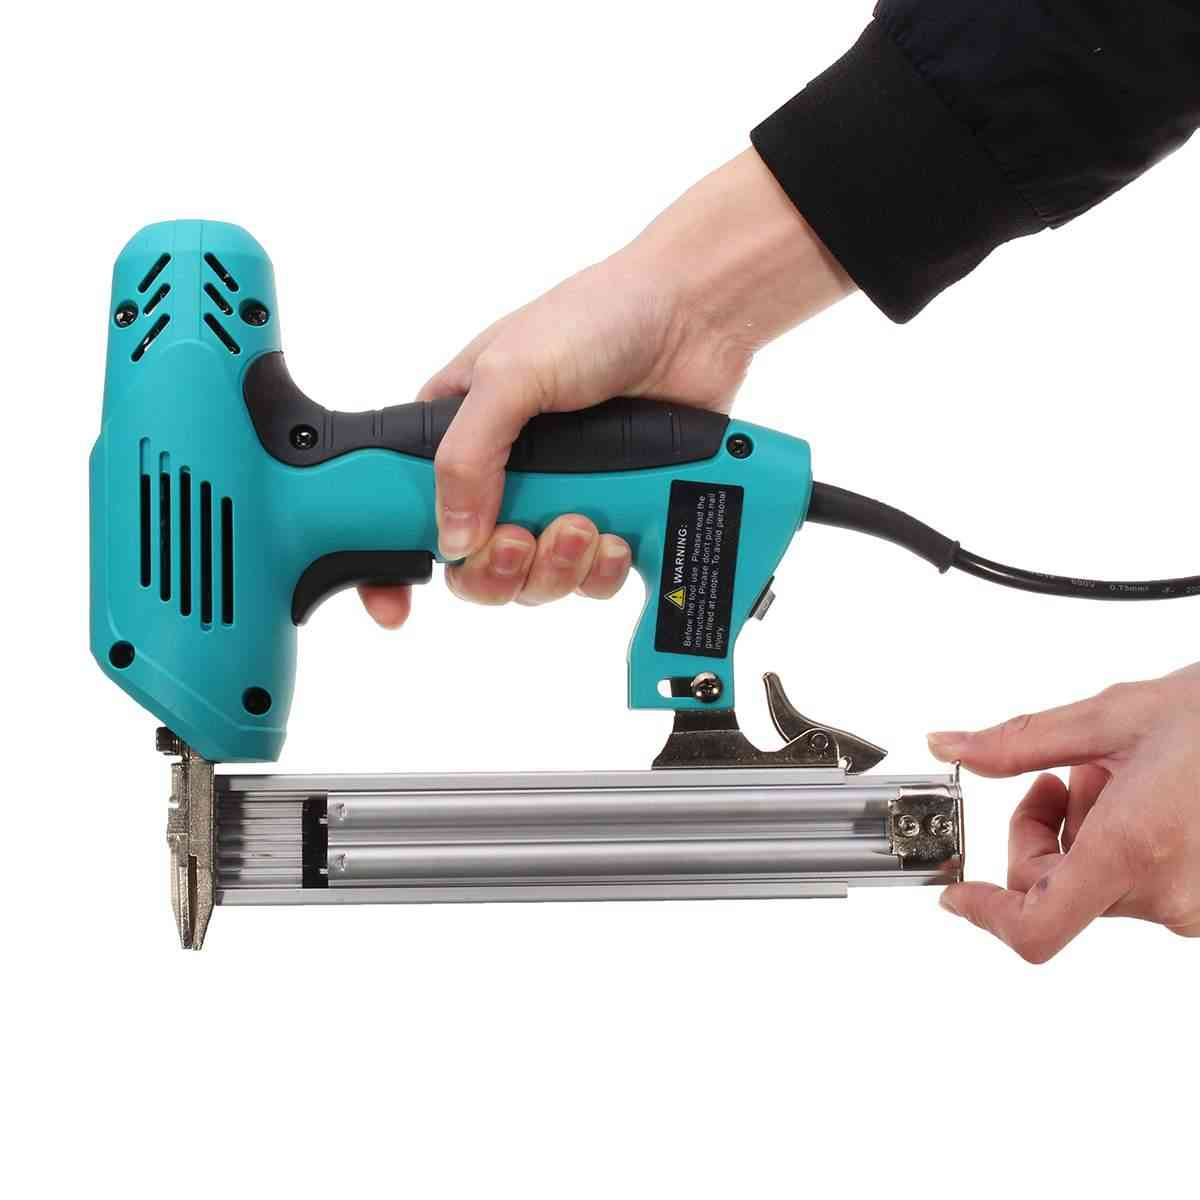 Electric Straight Nail-gun For Woodworking Electrical, Staple Tacker Gun Tool